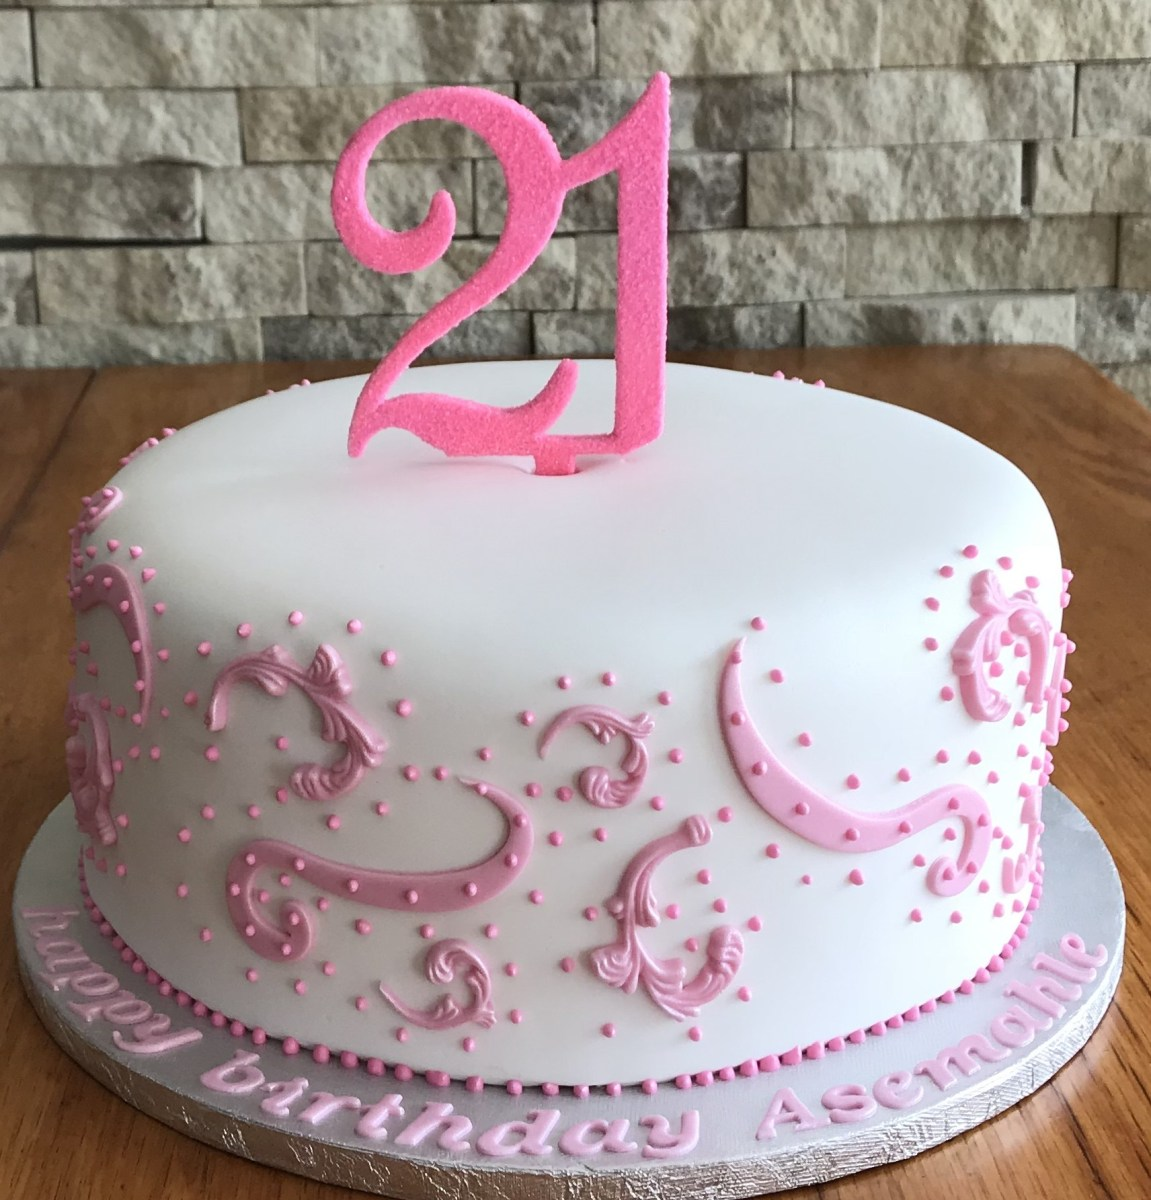 Incredible 21St Birthday Cakes For Her 21St Birthday Cakes Mulberry Cakes And Funny Birthday Cards Online Hendilapandamsfinfo